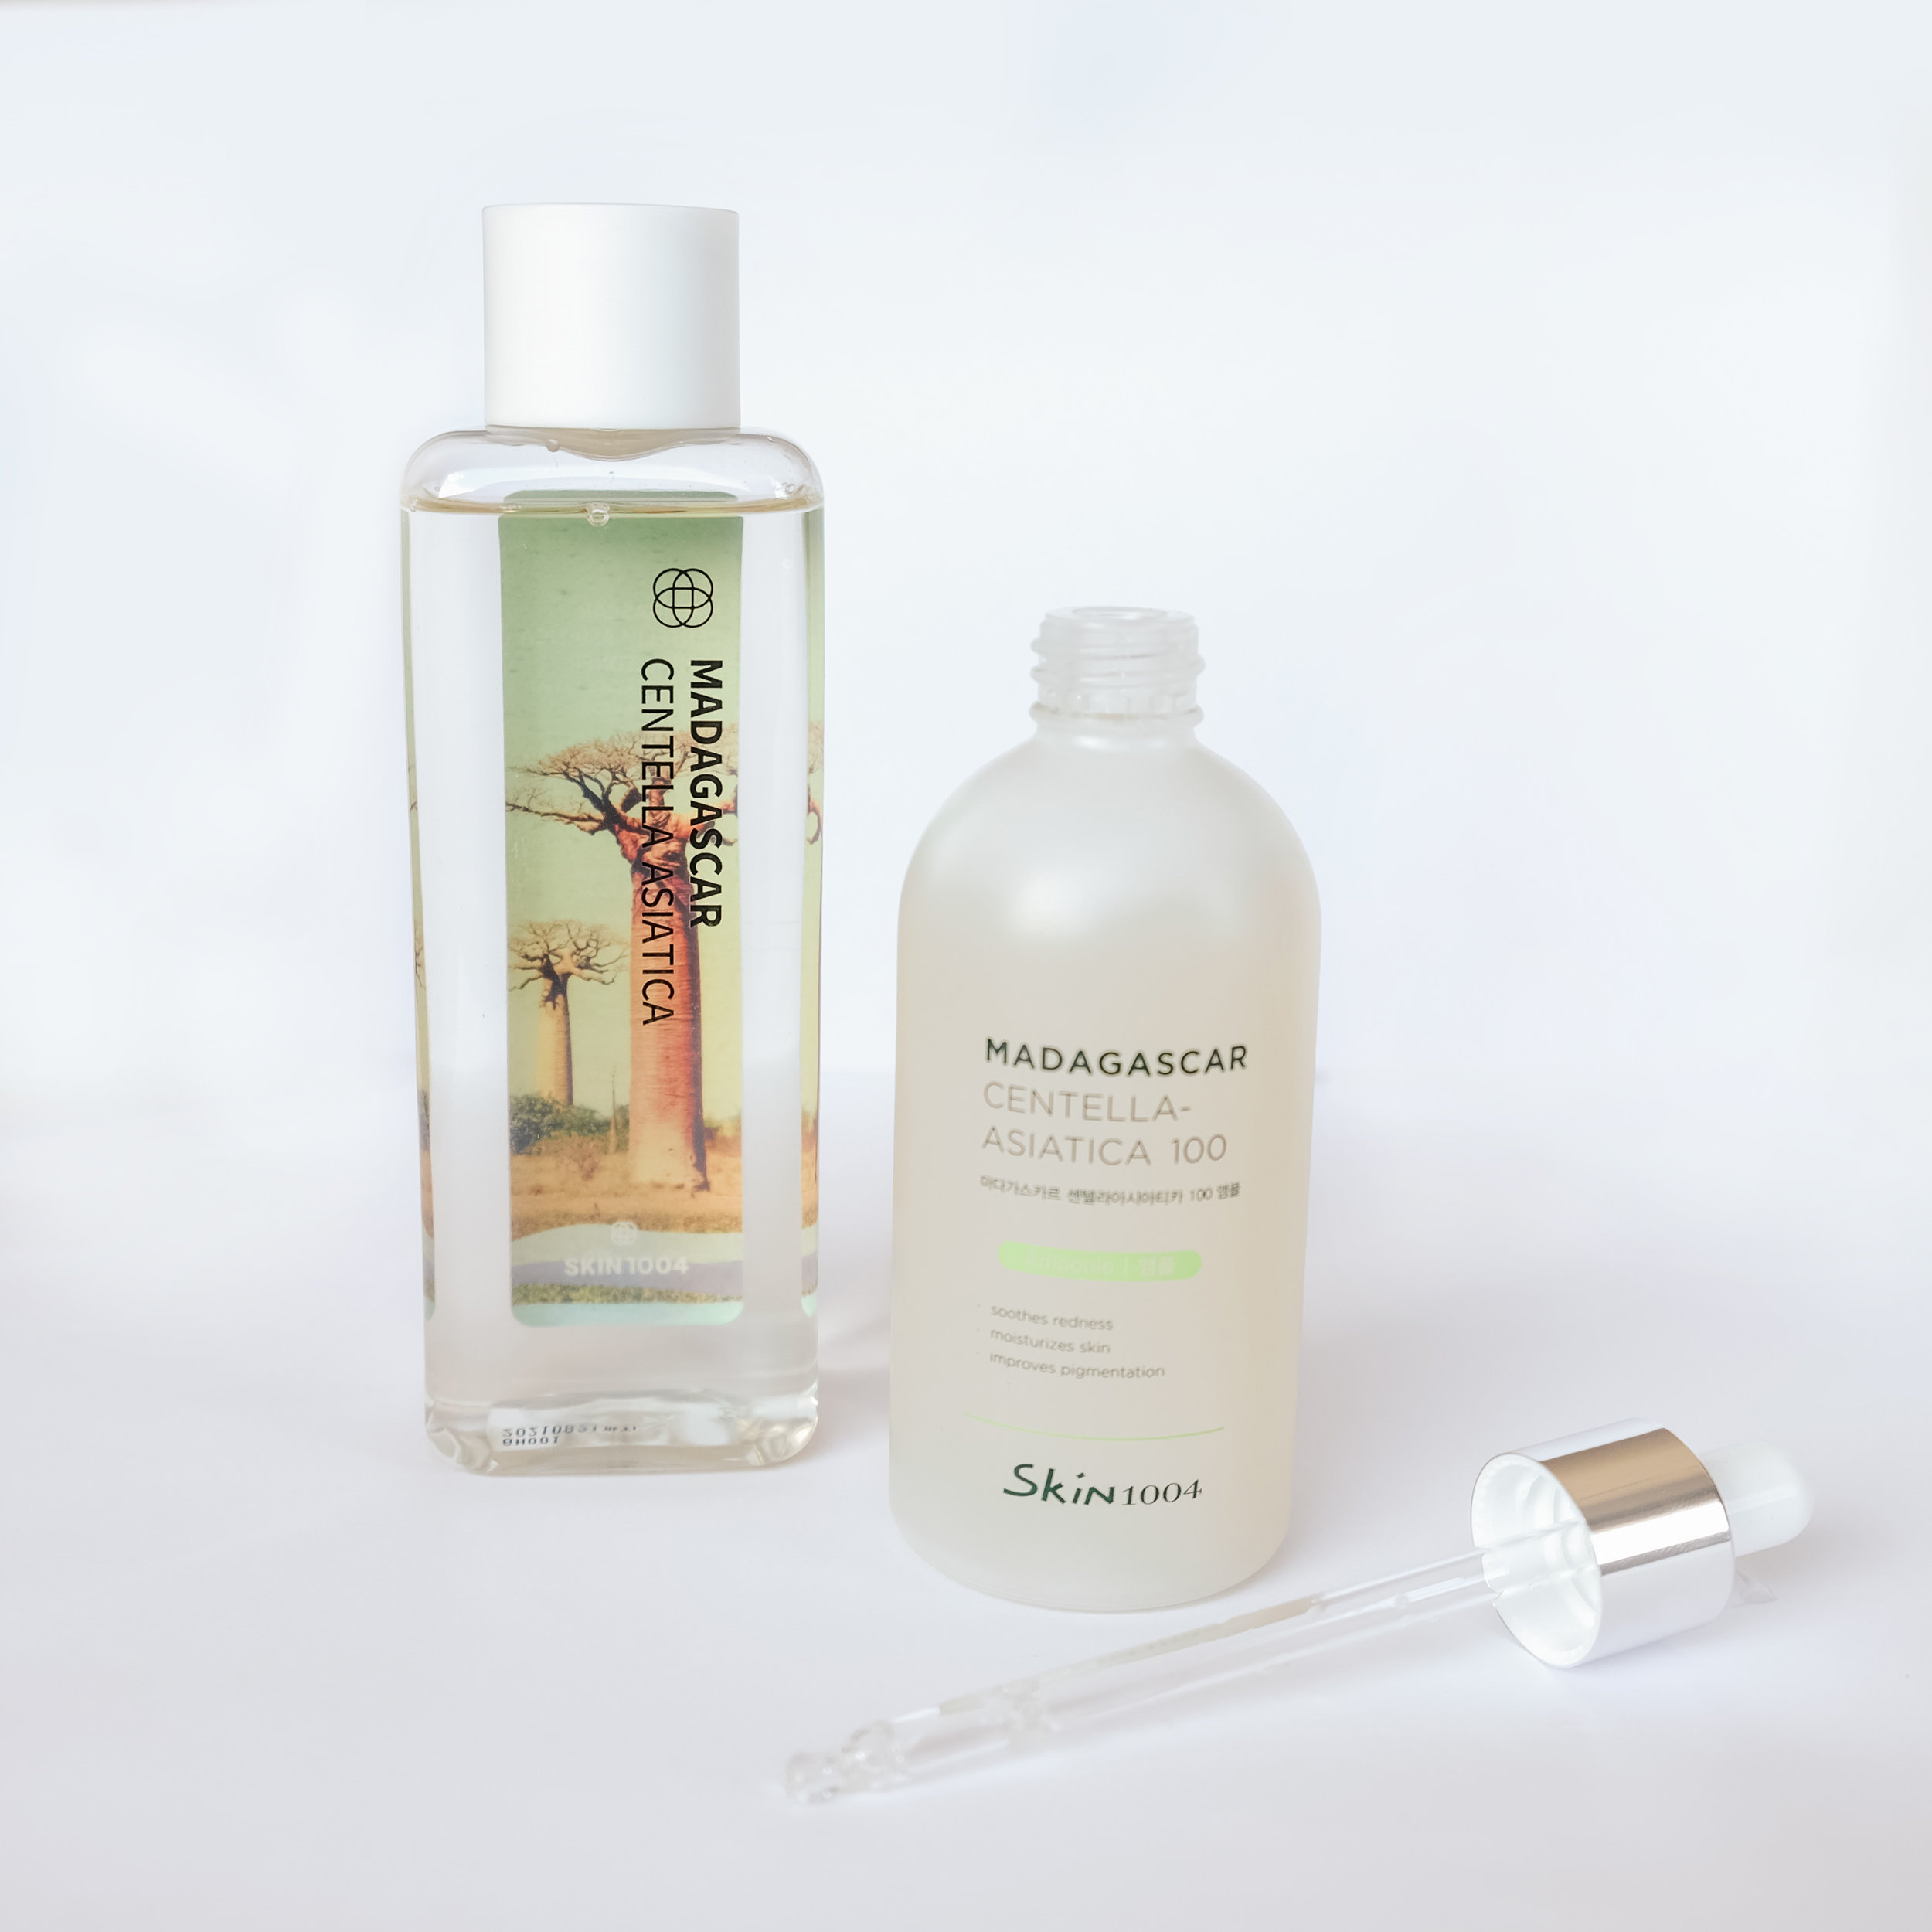 Skin1004 Madagascar Centella Asiatica Toner and Ampoule Set